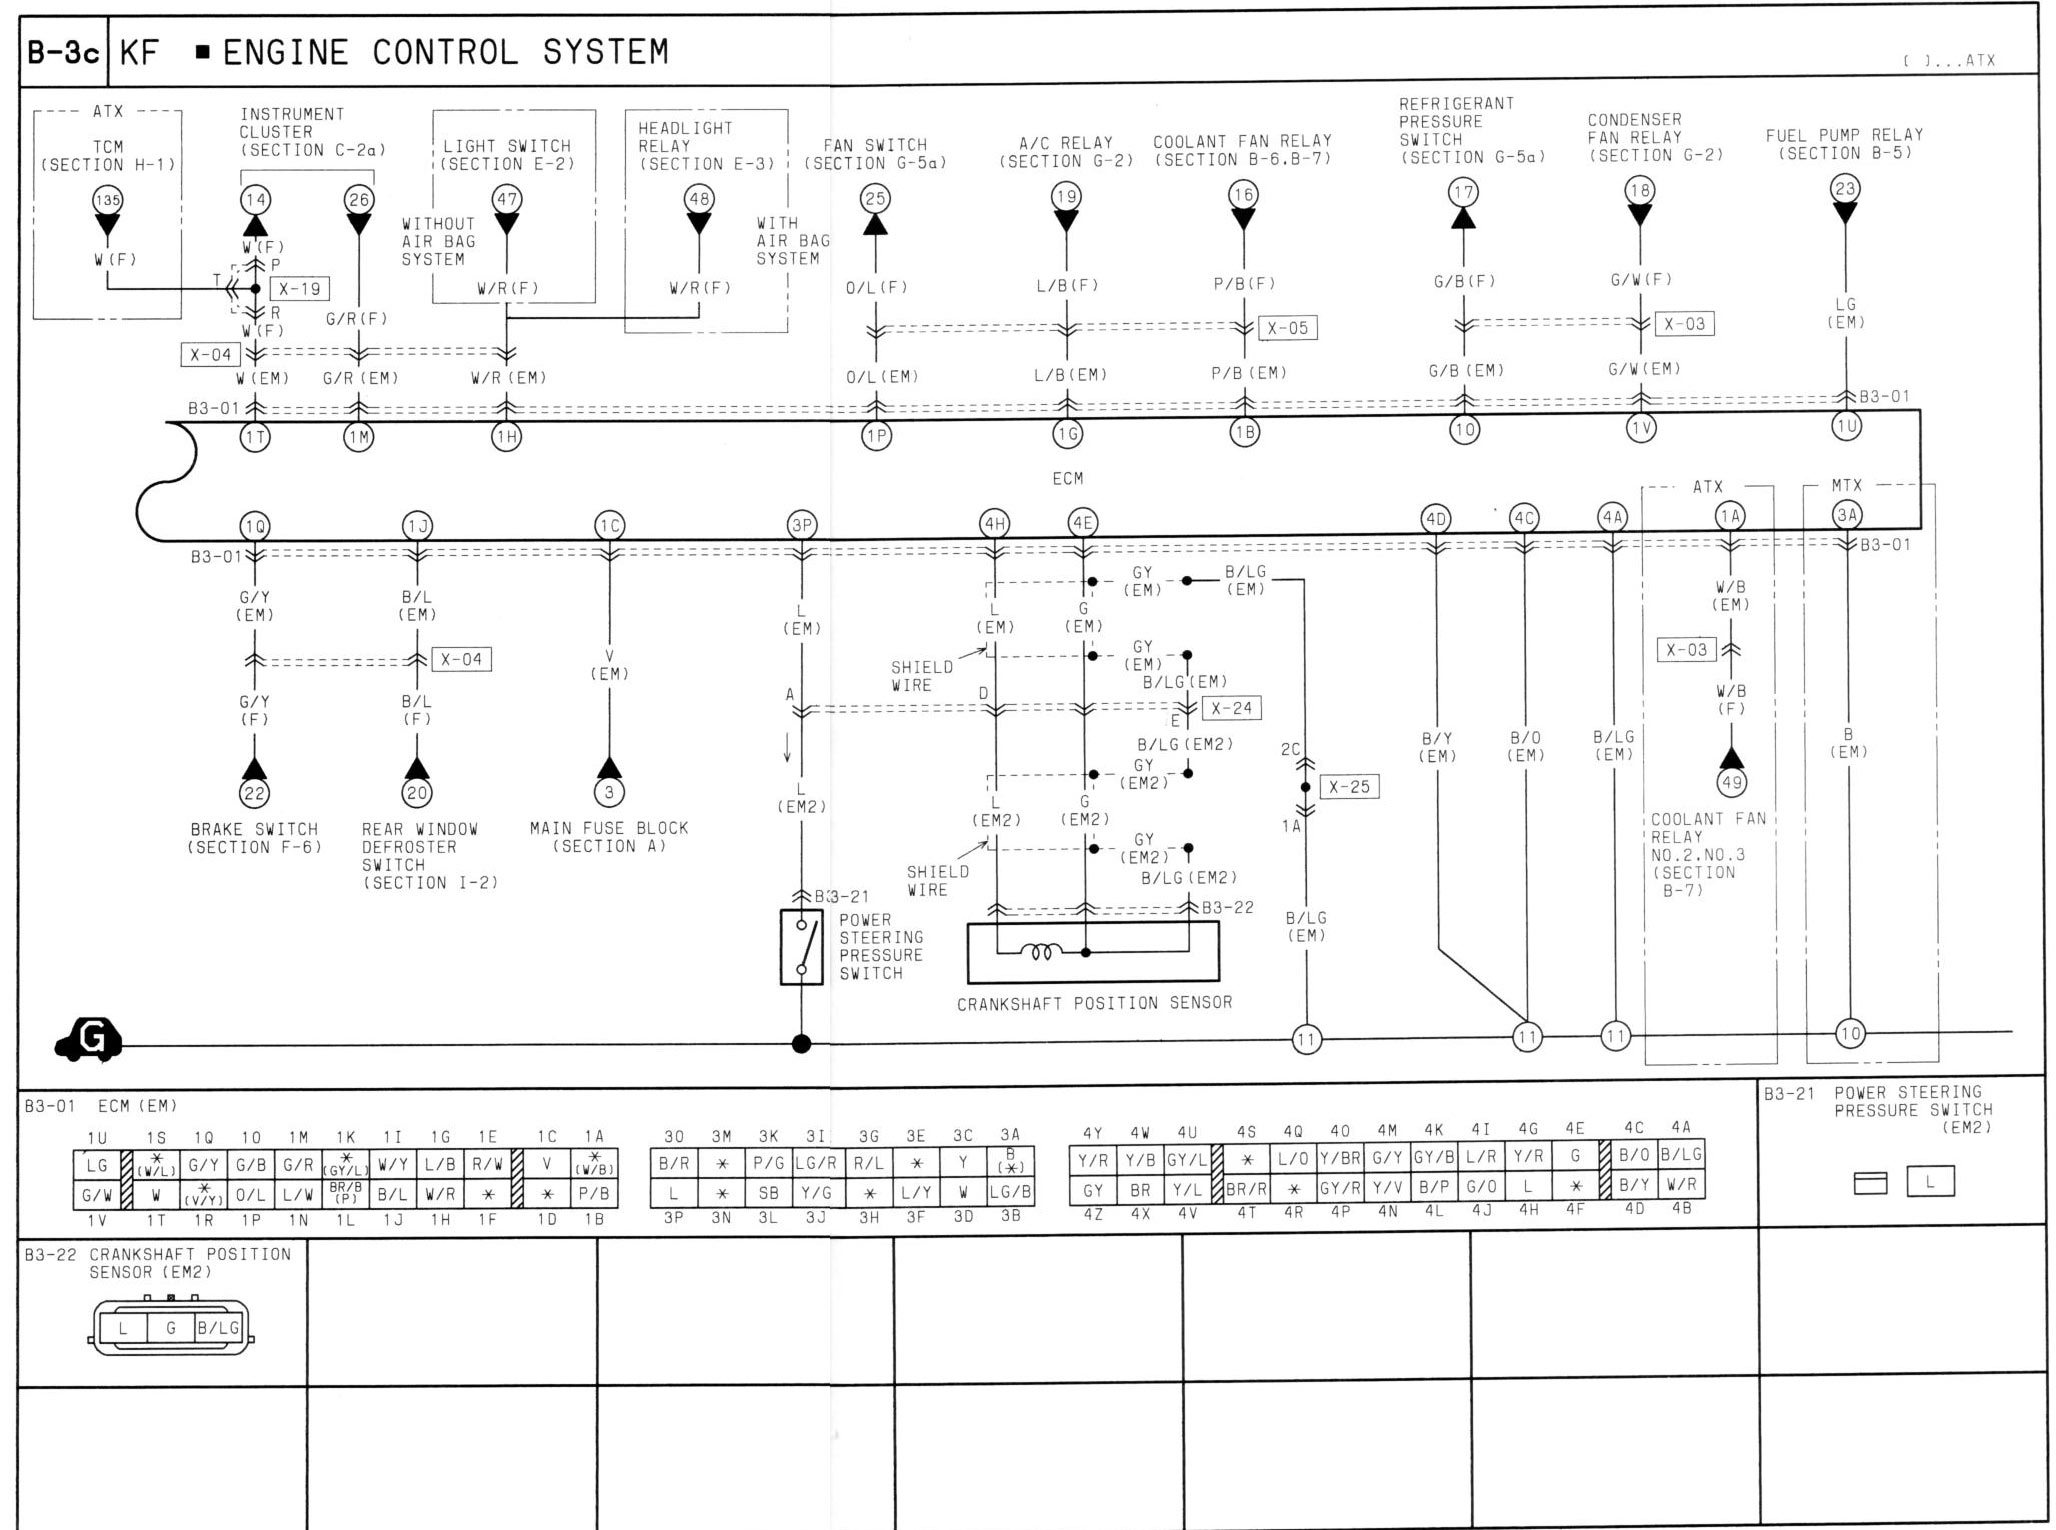 lantis 2 0 v6 wiring diagram needed astinagt forums rh astinagt com Mazda 323 Relay Diagram Mazda 626 Engine Diagram